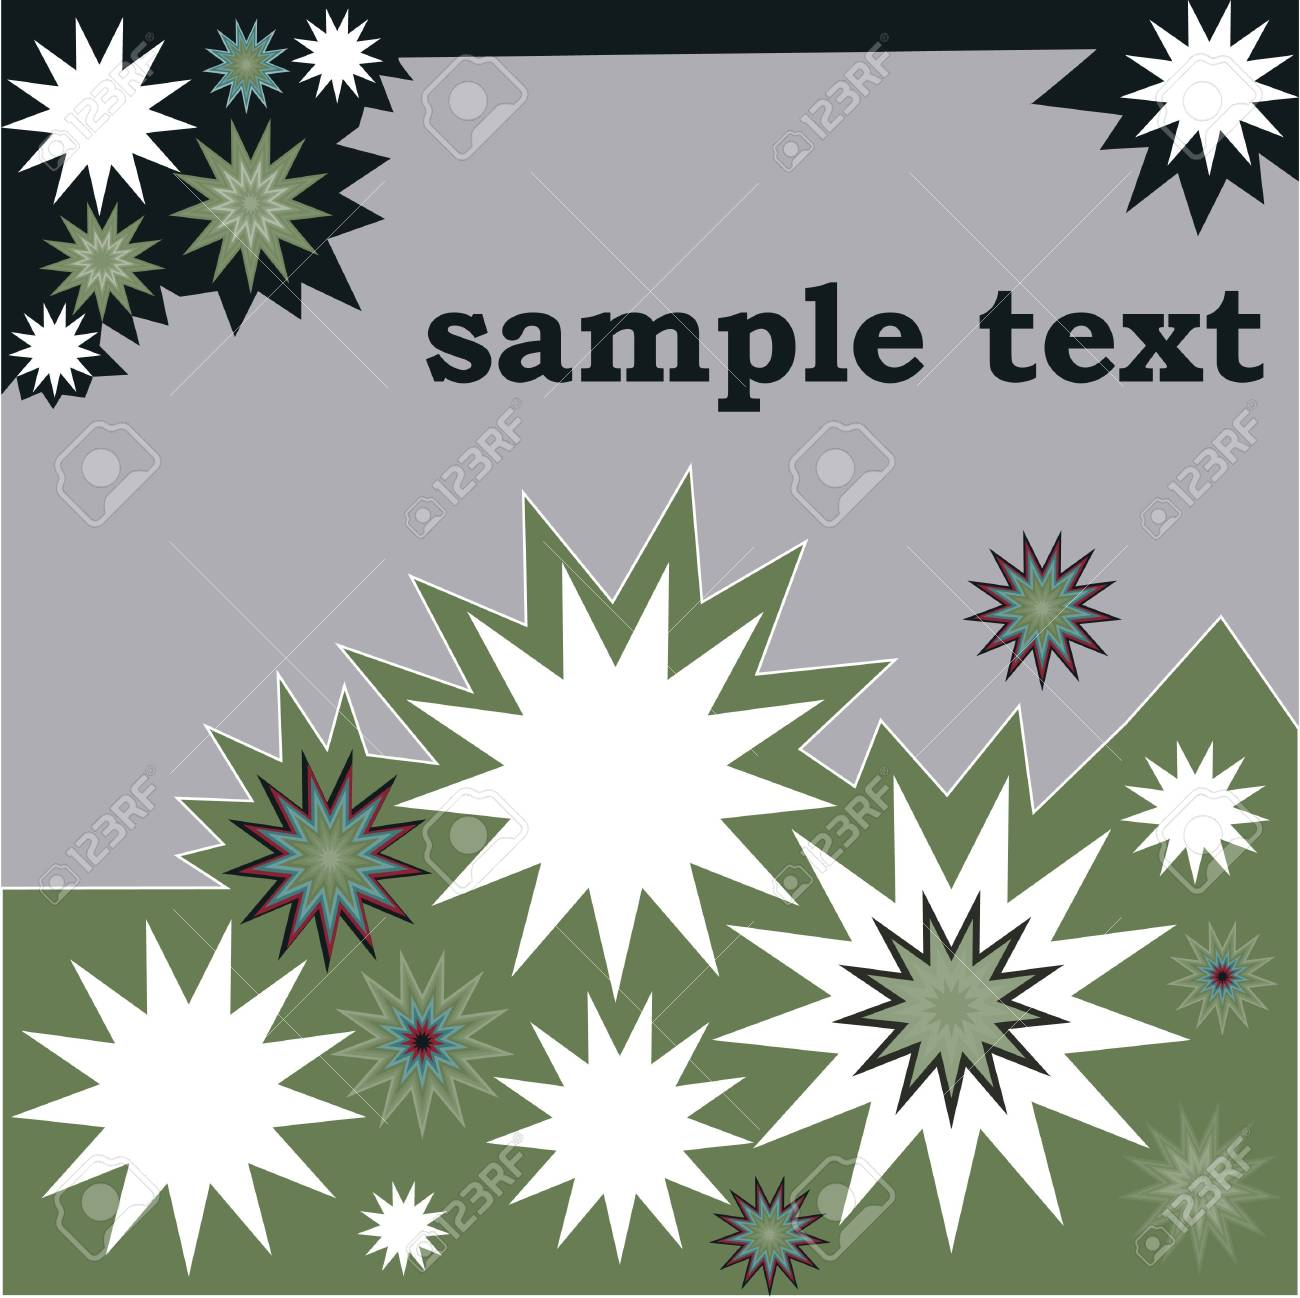 Retro floral background with sample text Stock Vector - 7509530